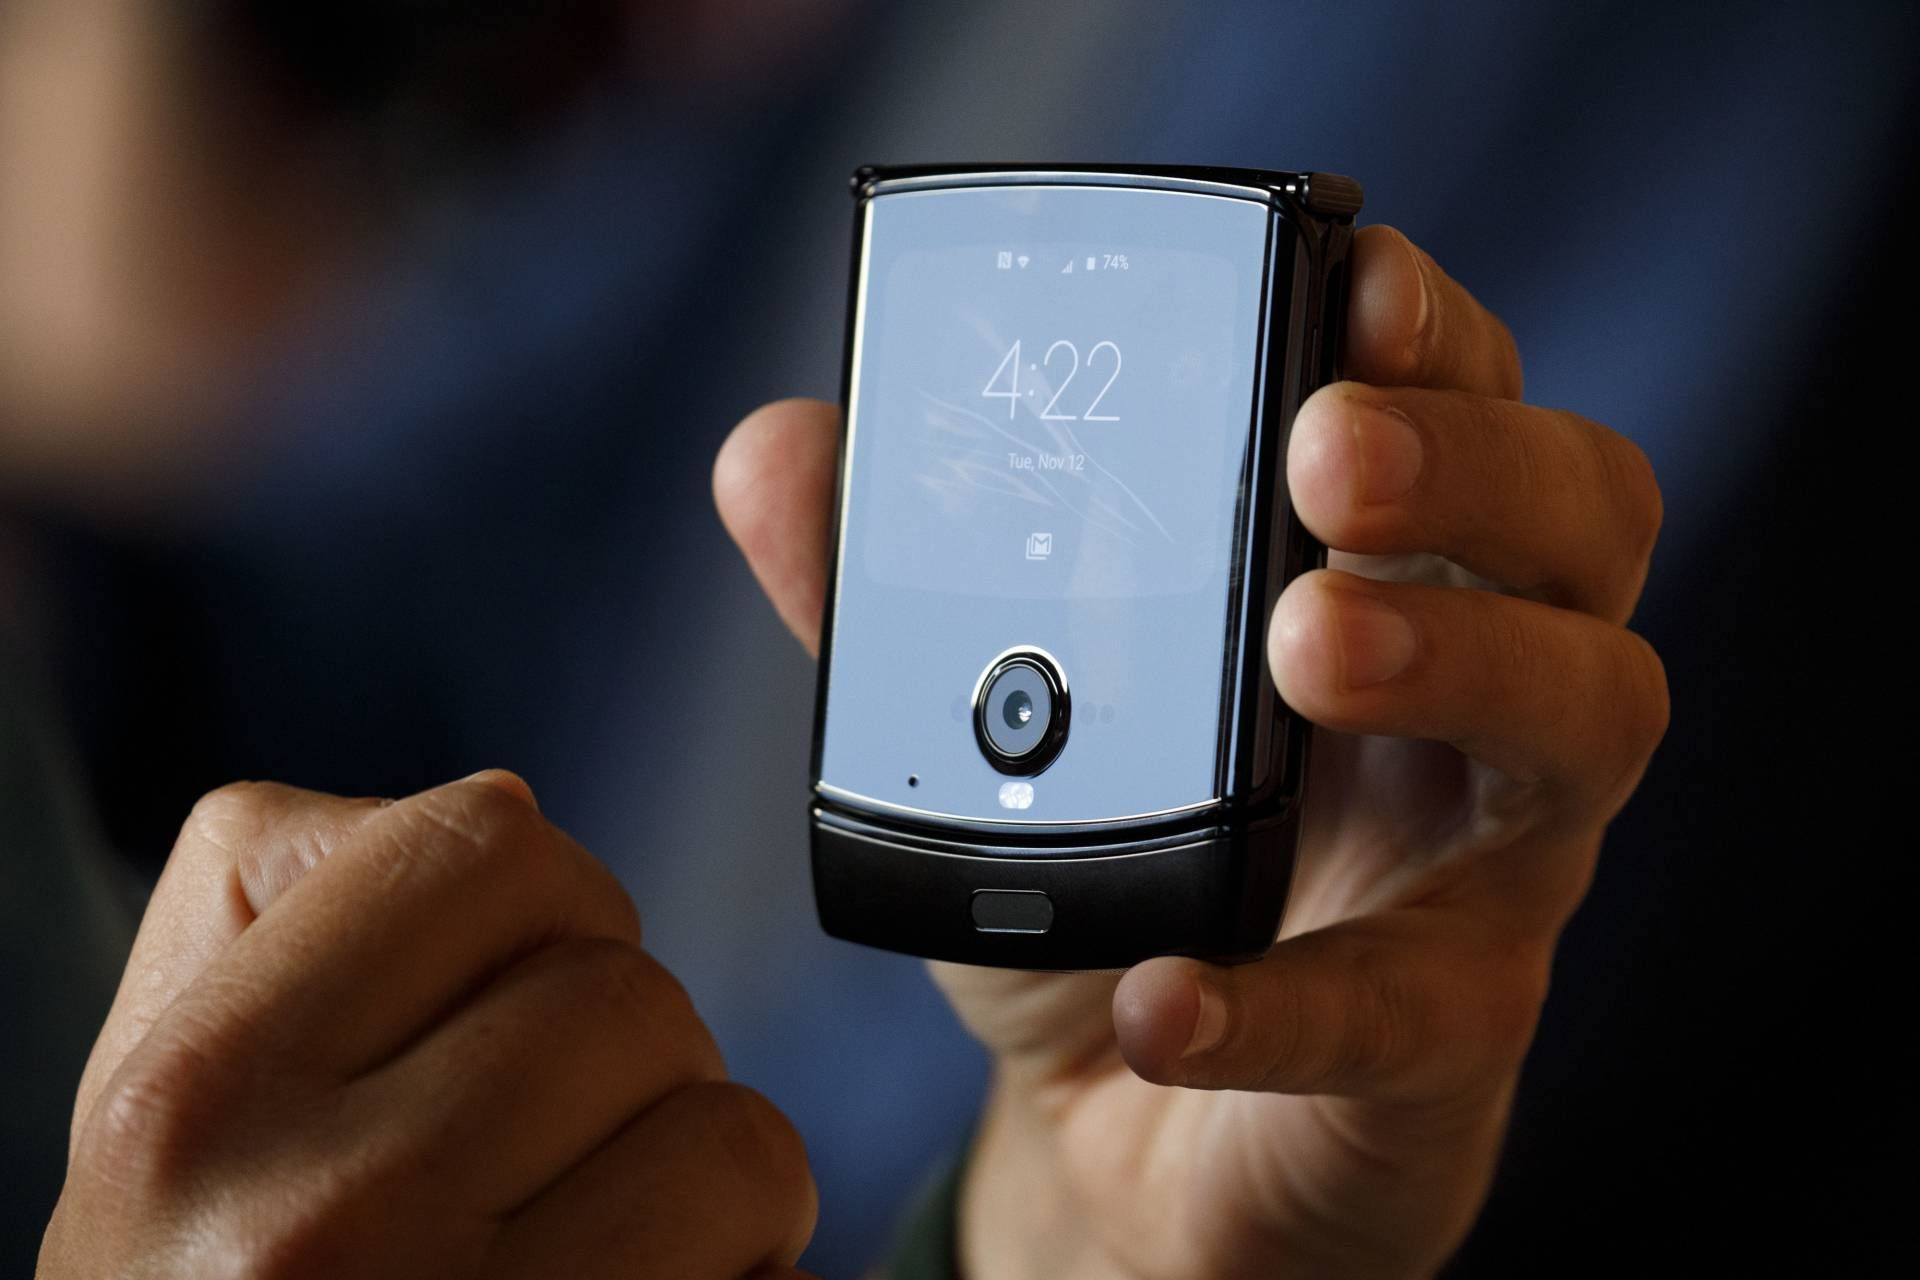 The external touchscreen allows users to access commonly used functions, like answering calls and replying texts. — Bloomberg